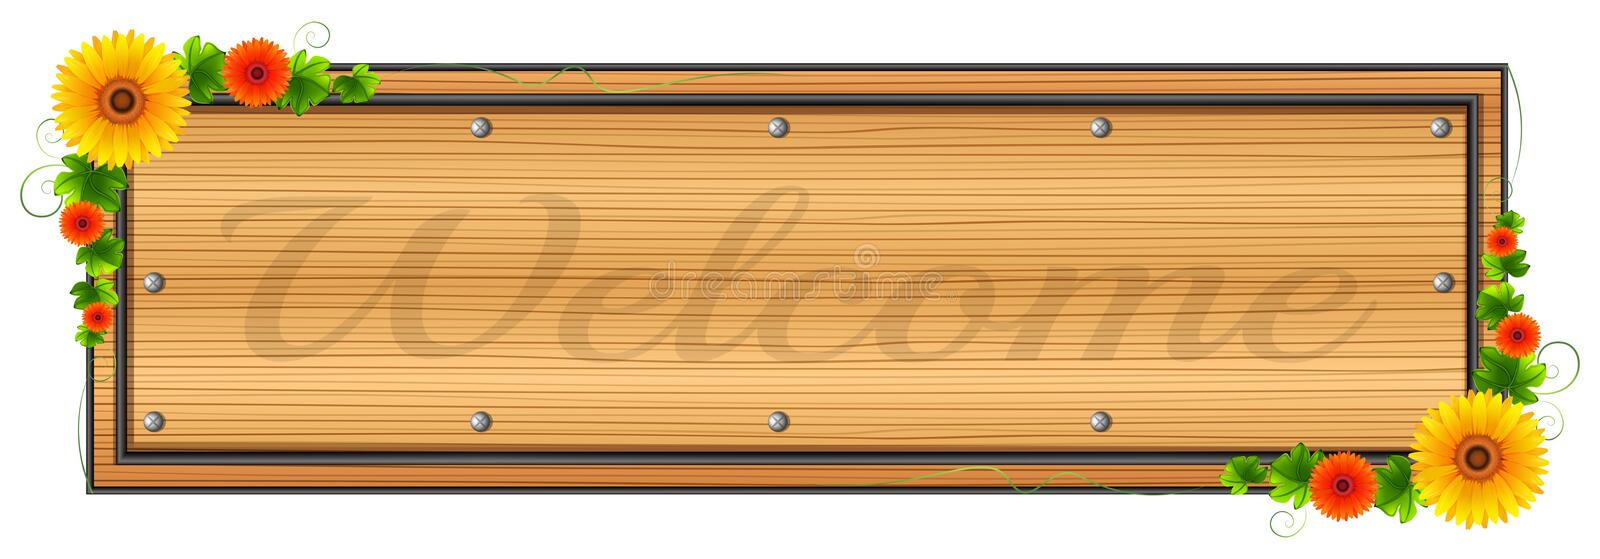 A wooden welcome signage royalty free illustration